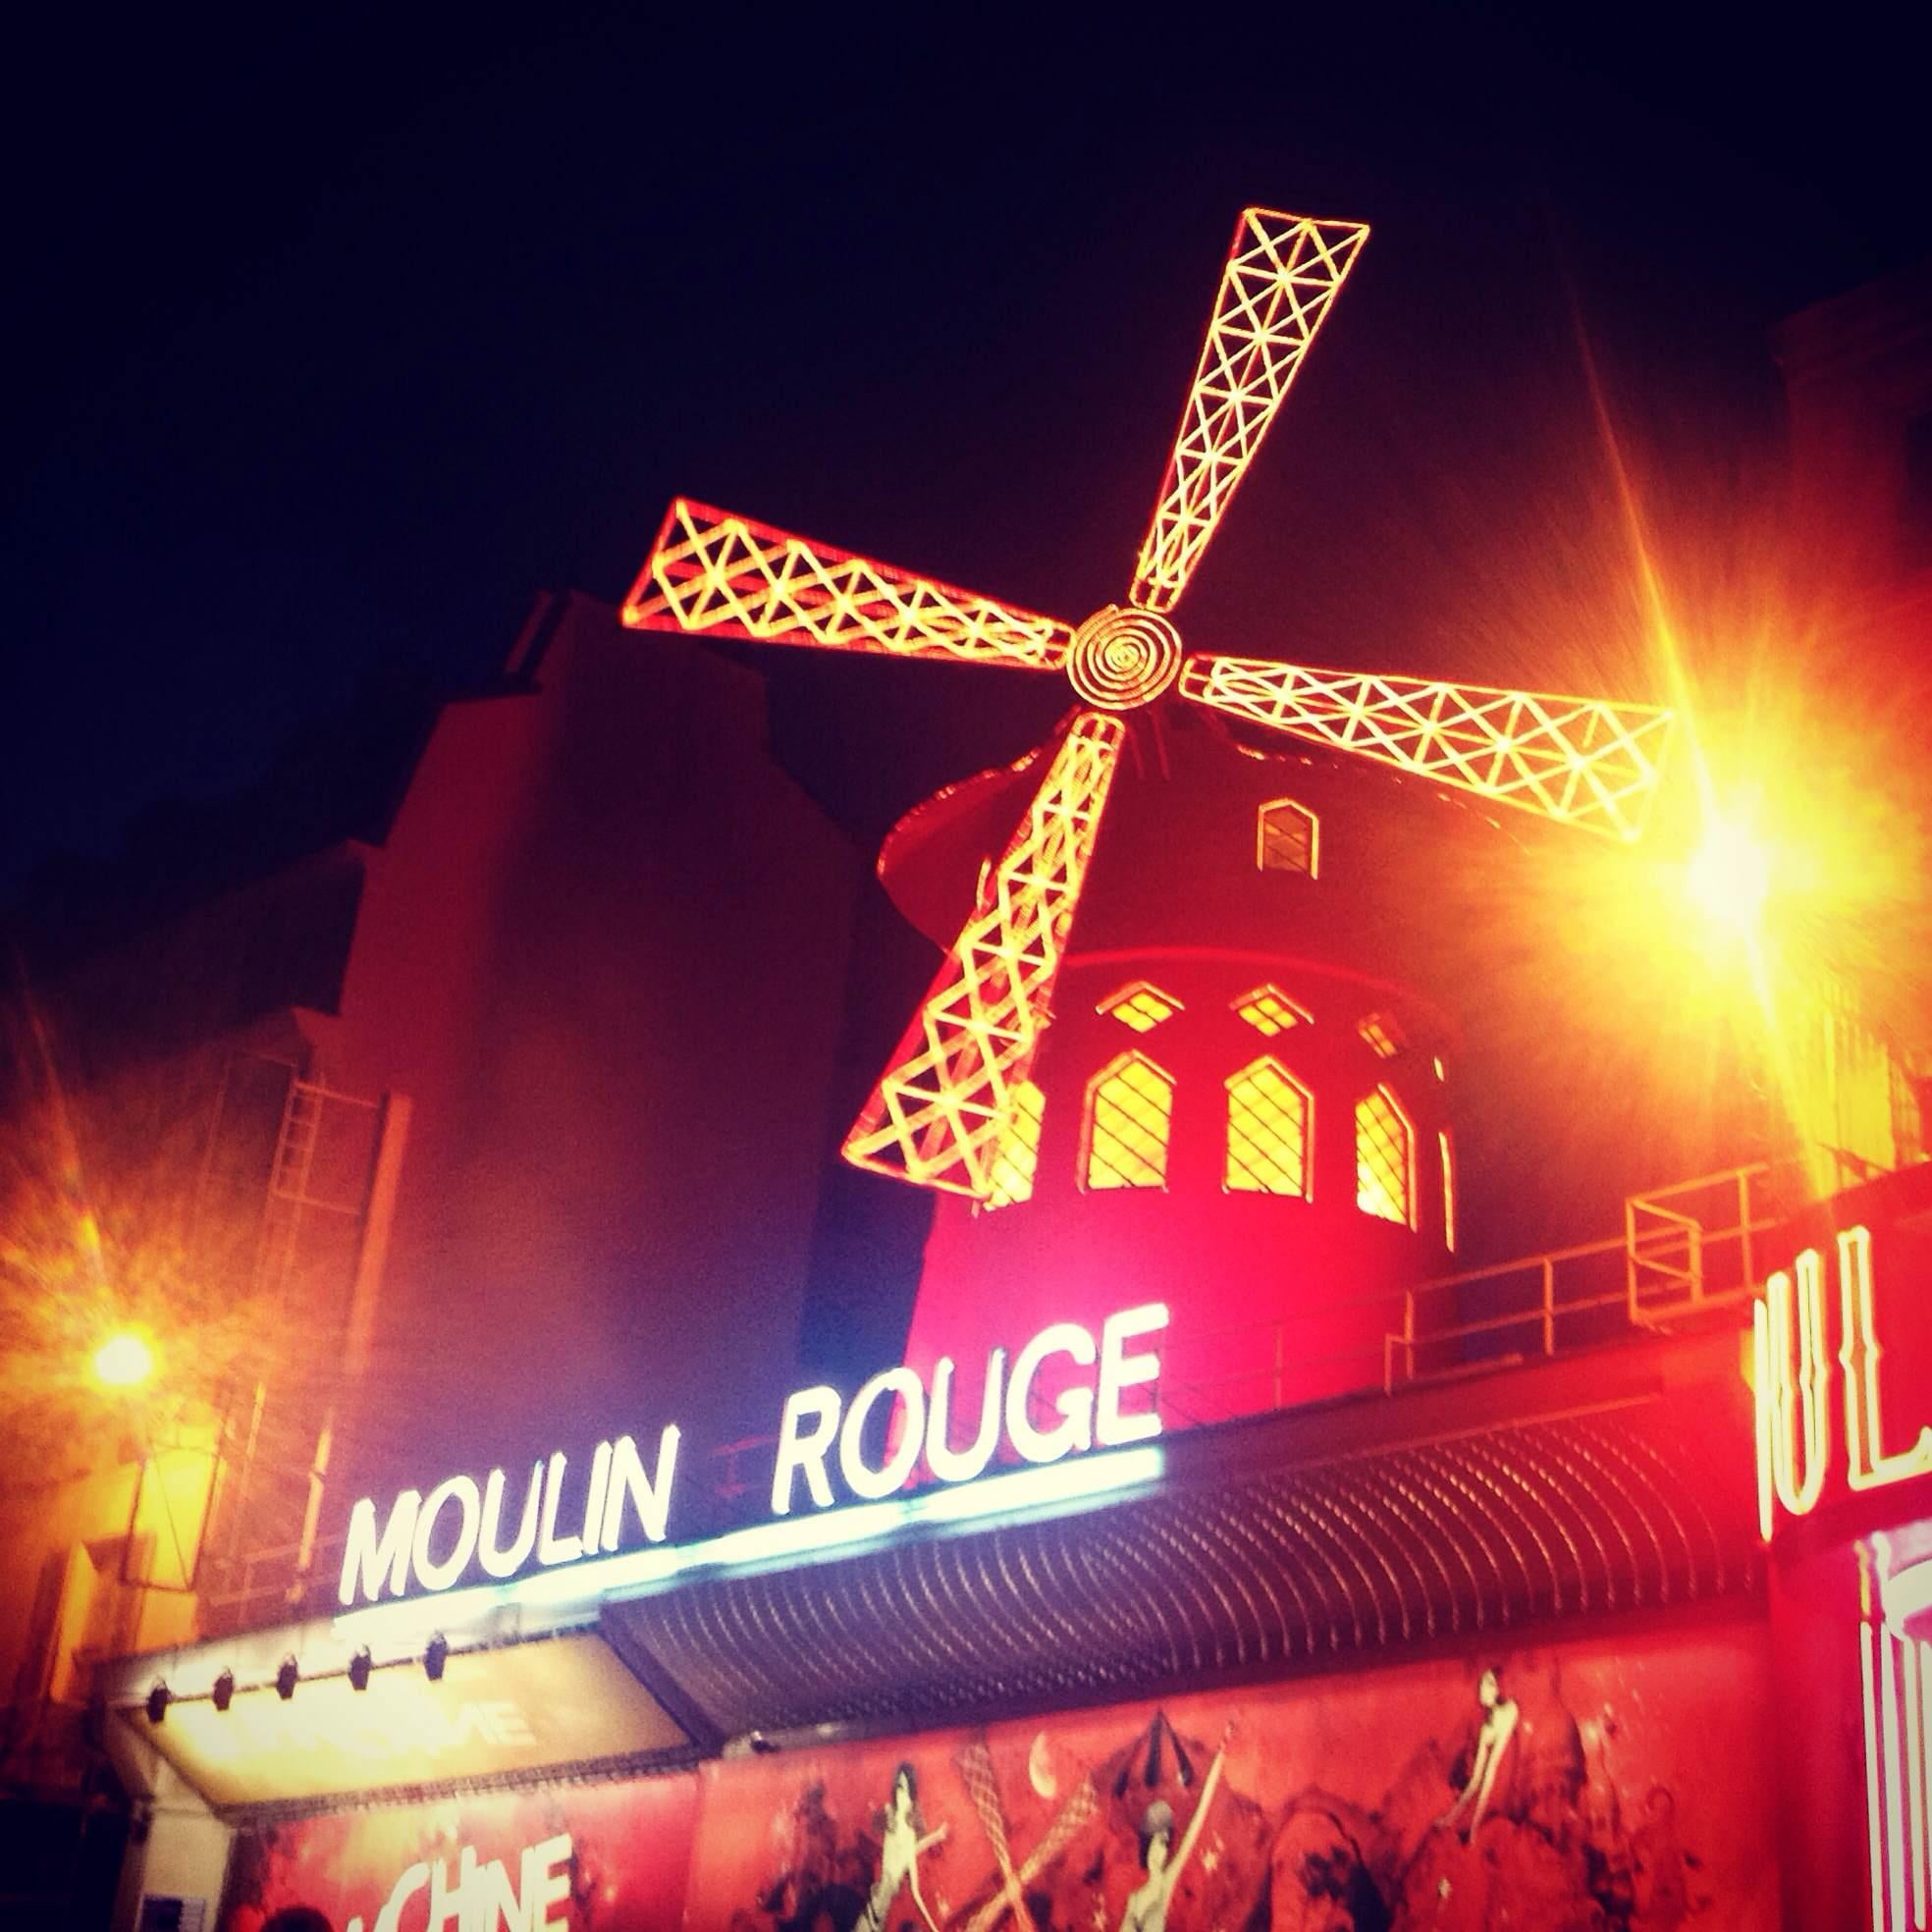 Parque en Moulin Rouge